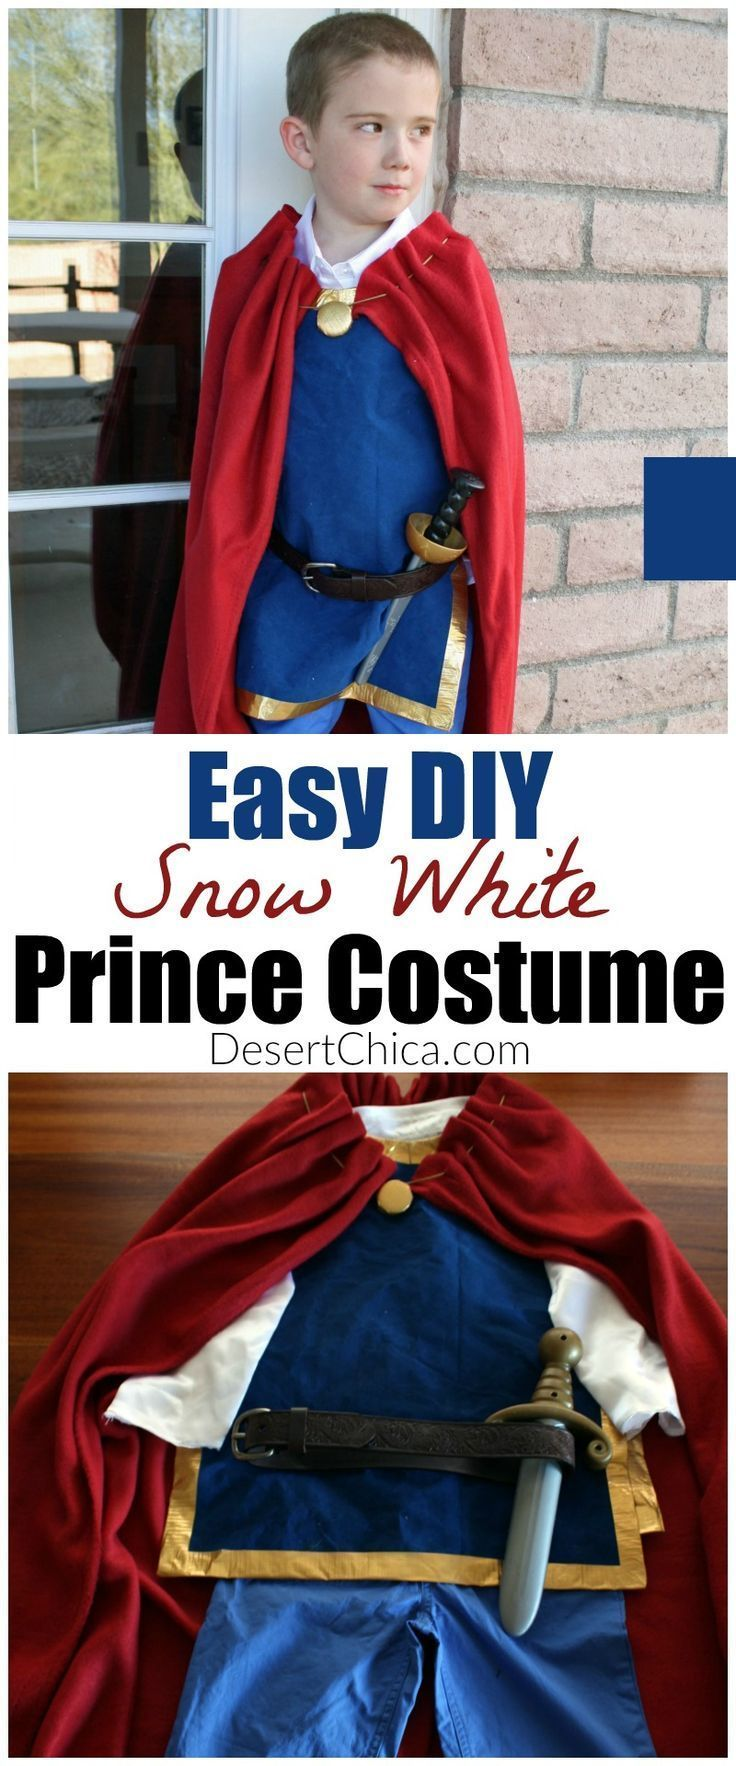 Who says princesses have all the fun?!? | Easy DIY Snow White Prince Costume Cosplay |